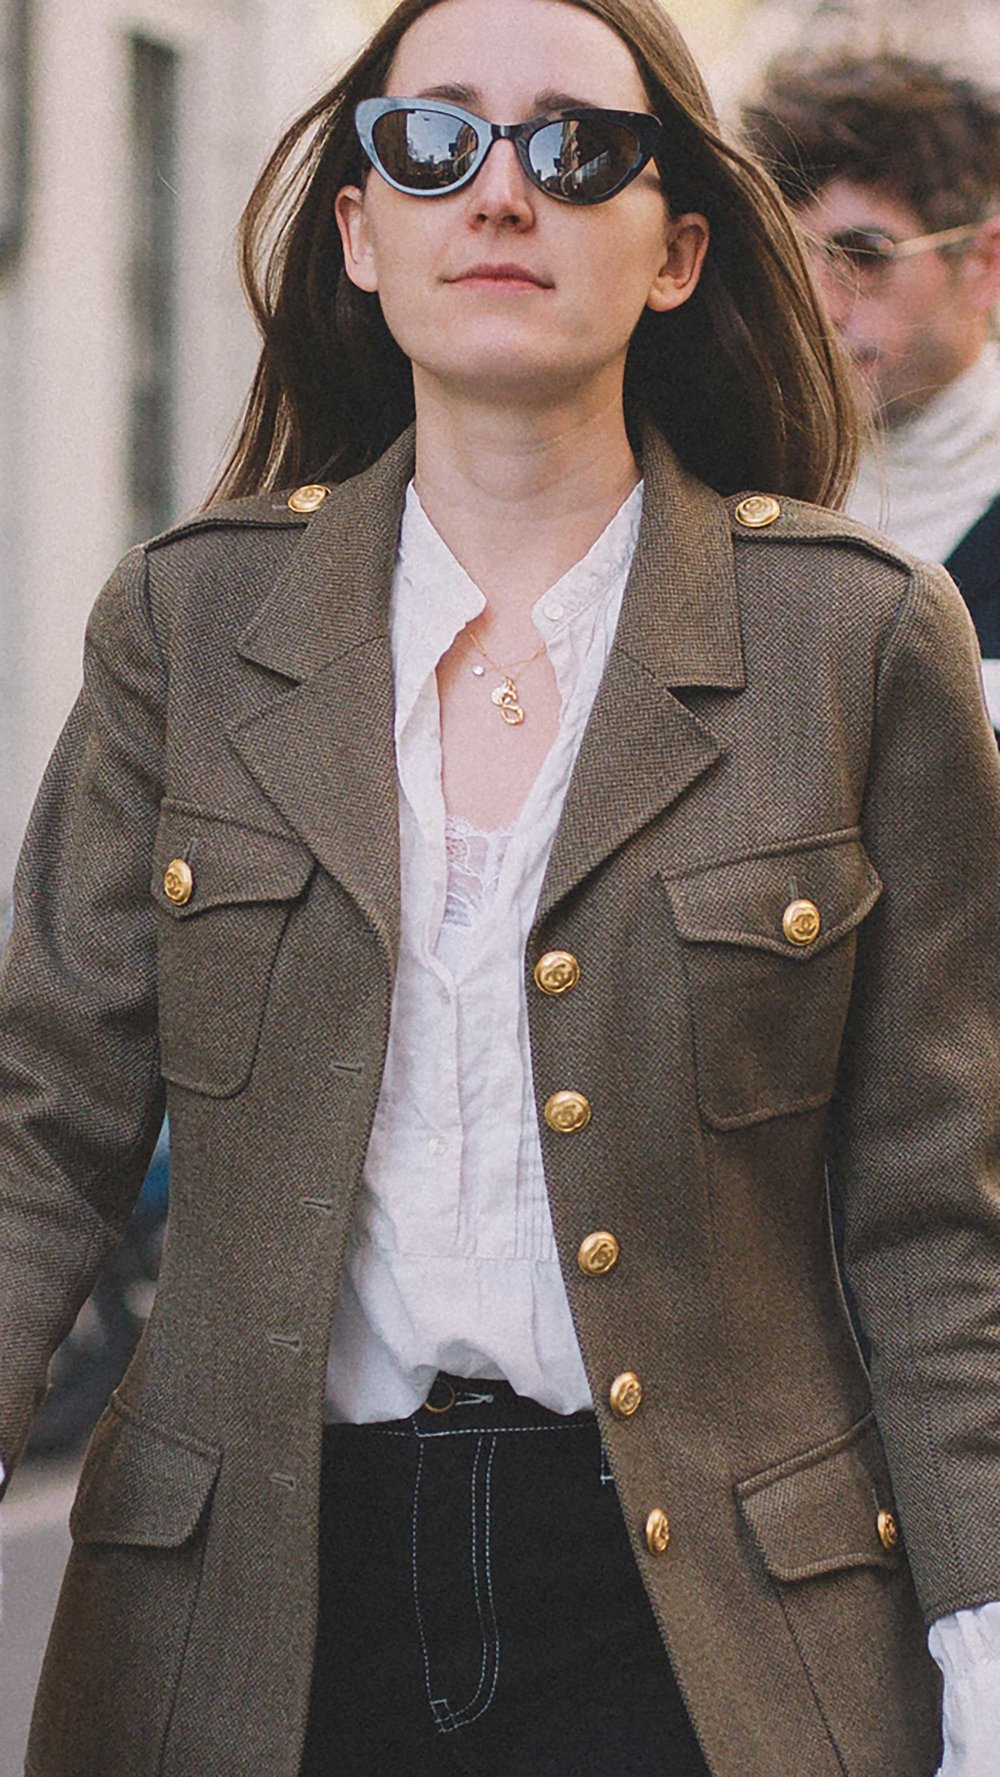 est outfits of Milan Fashion Week street style day two MFW FW19 72.jpg